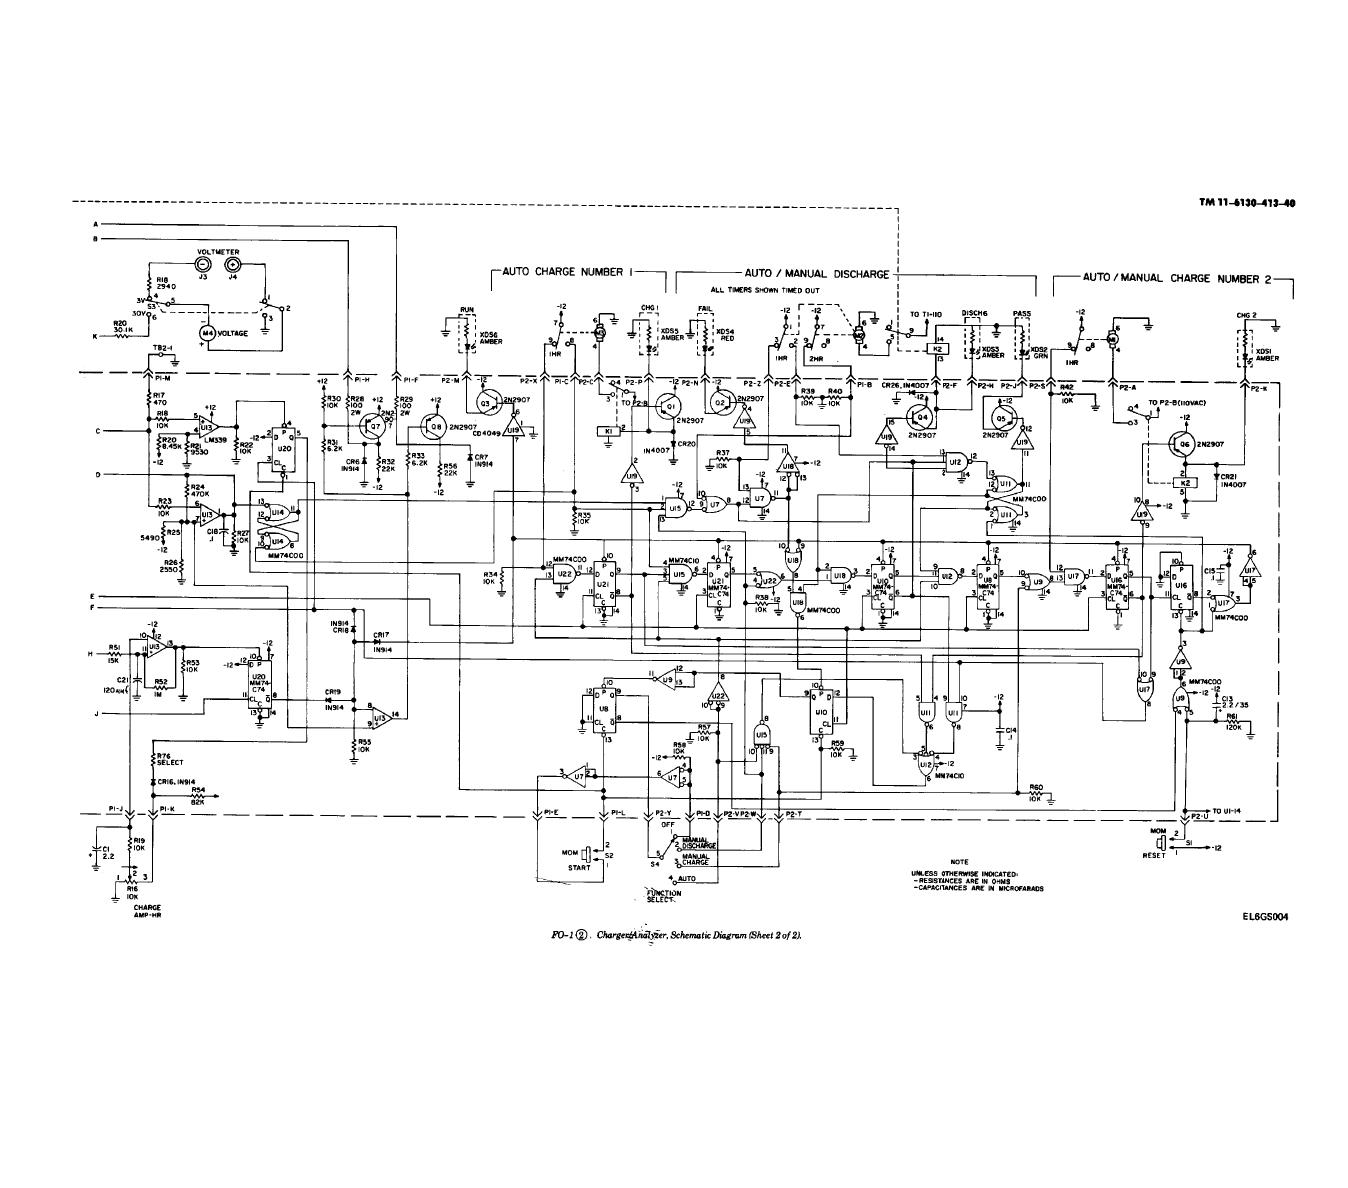 Fo 1 Chargeryzer Schematic Diagram Sheet 2 Of 2